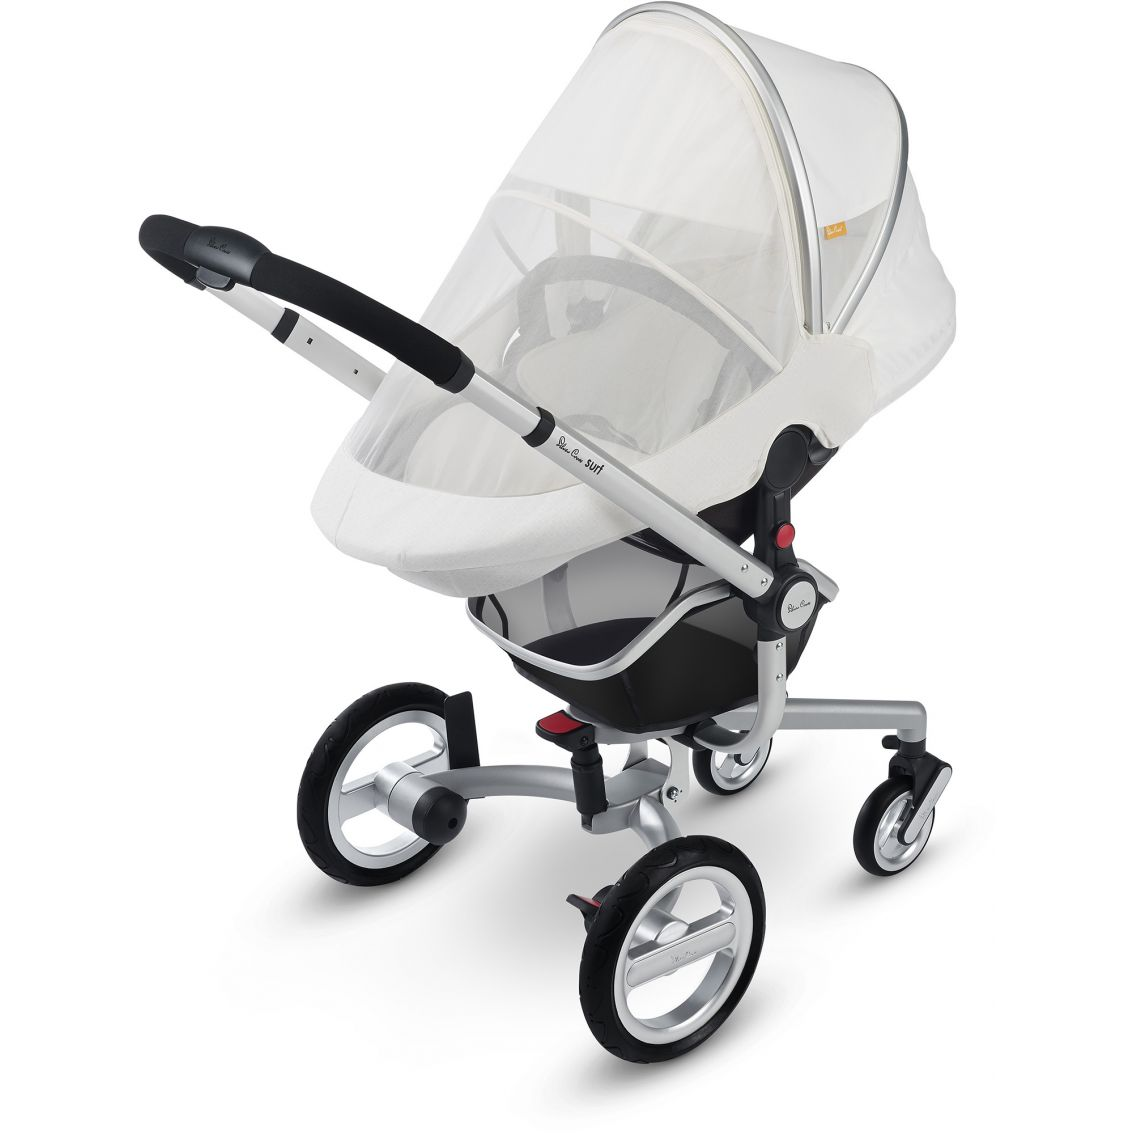 mosquito Silver Cross Surf and Surf 2 pram UV sun protection insect net